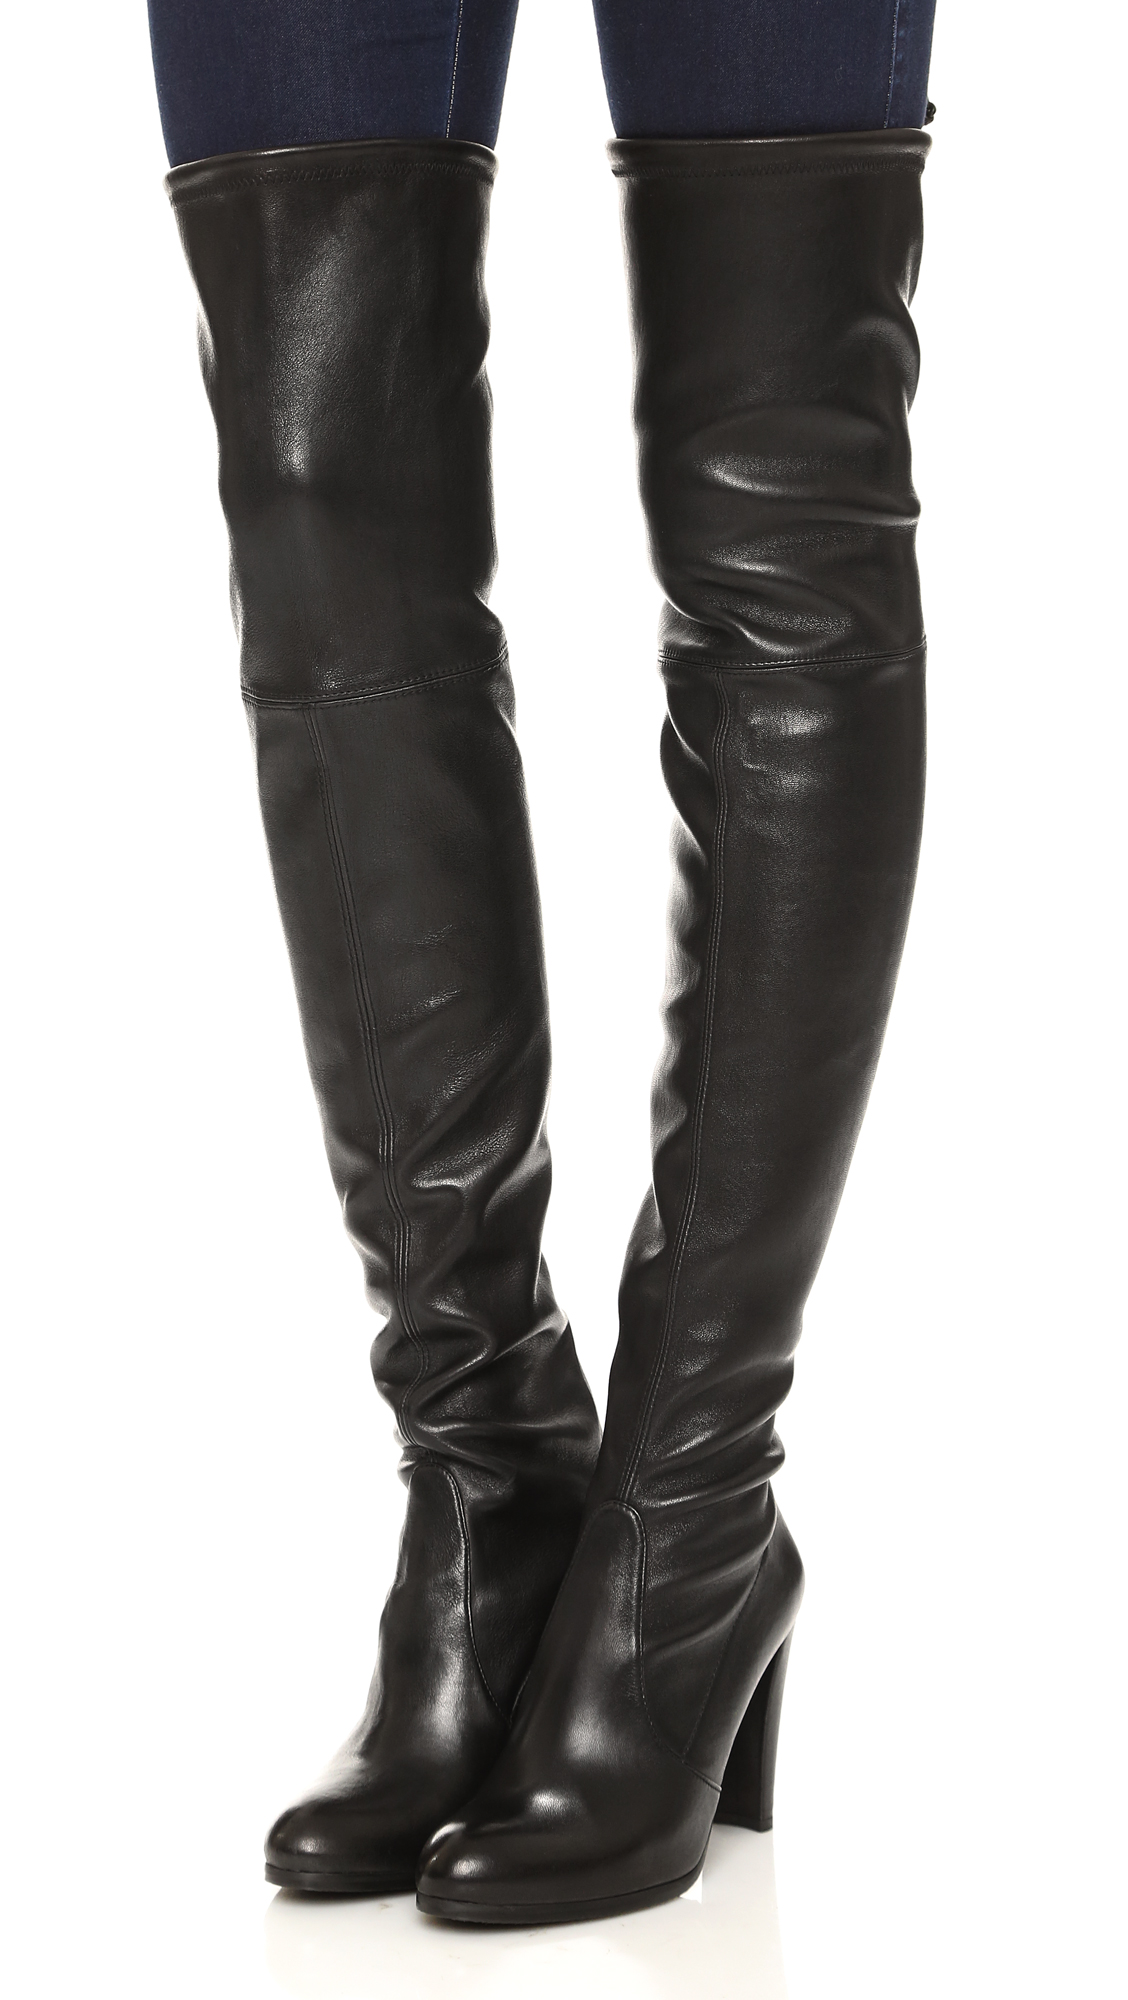 bf4656ddb58f Stuart Weitzman Highland Over the Knee Boots